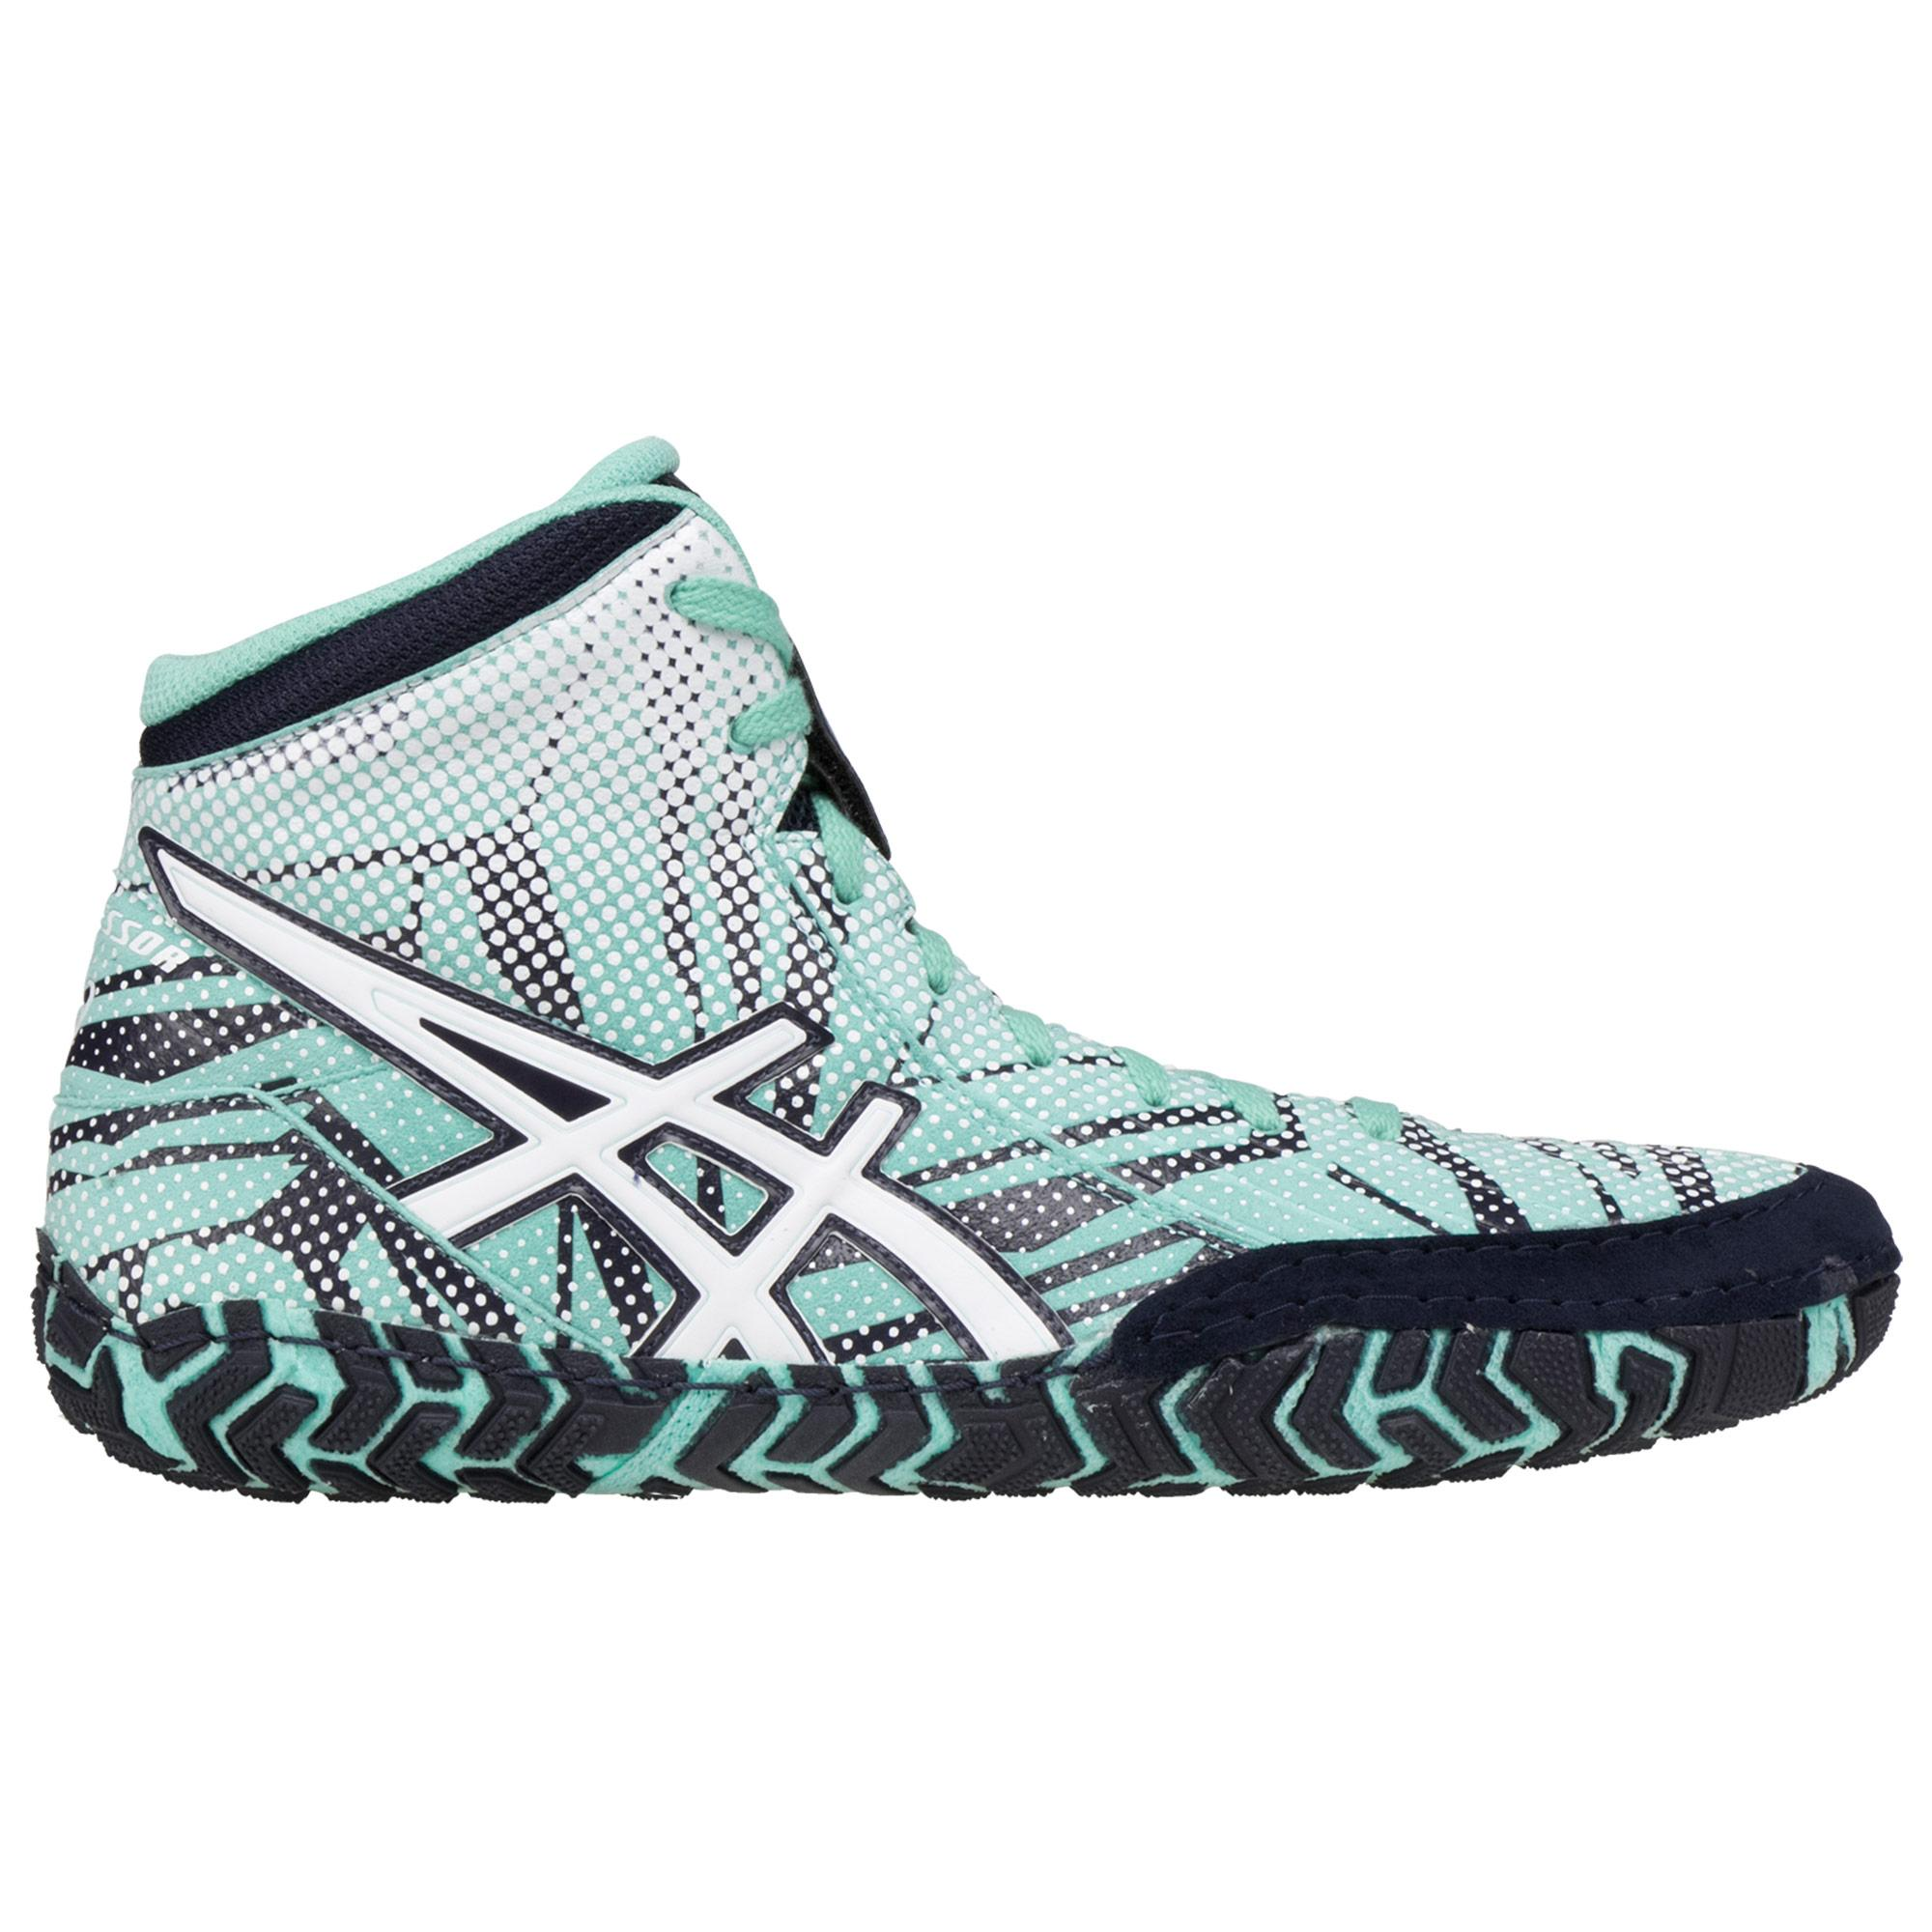 ASICS Aggressor 3 L.E. Geo Shoes | WrestlingMart | Free Shipping